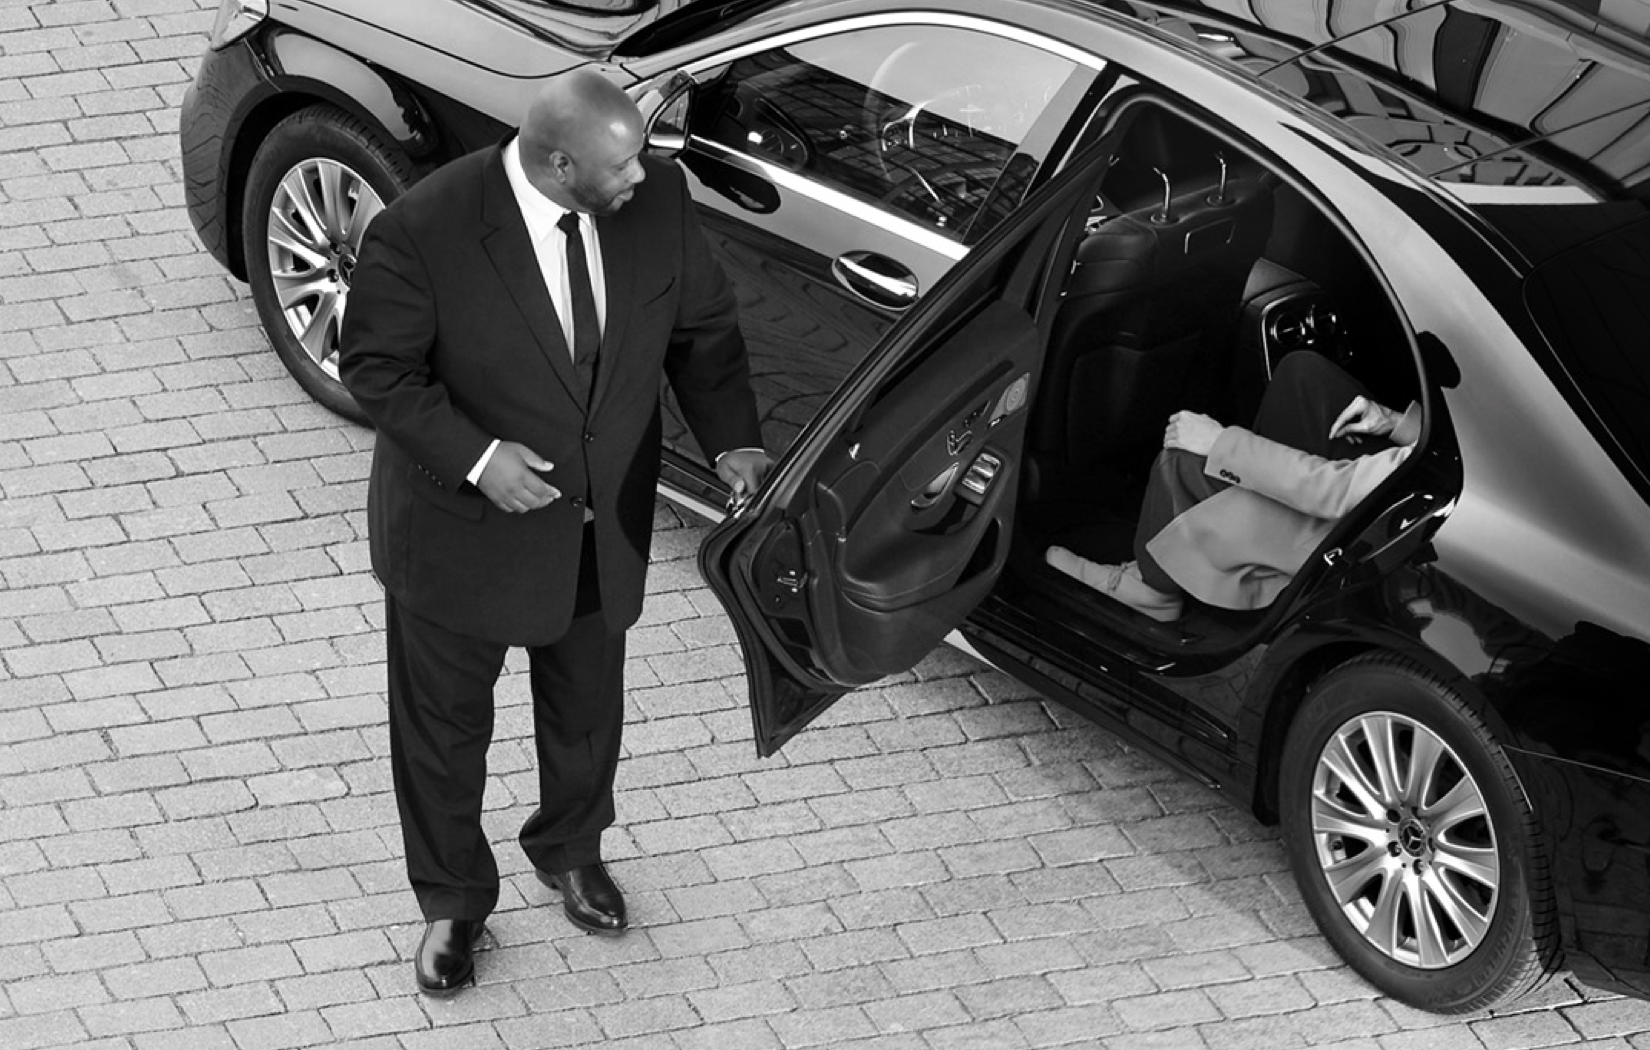 Still Receive A Black Car Experience In London Thanks To Our Fleet Of Sleek Mercedes Sedans And Vans Book Your Professional Limousine Service Today